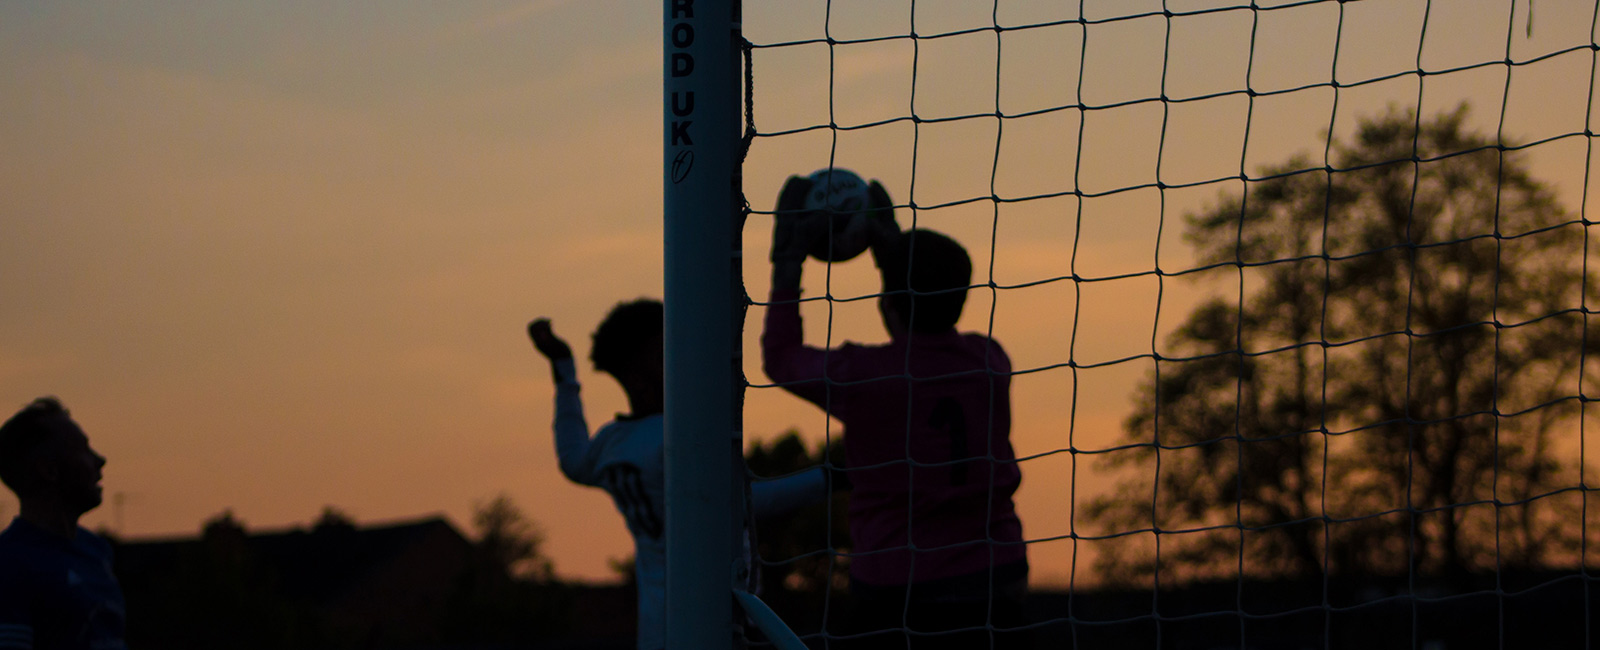 People playing football, the goalkeeper catching the ball